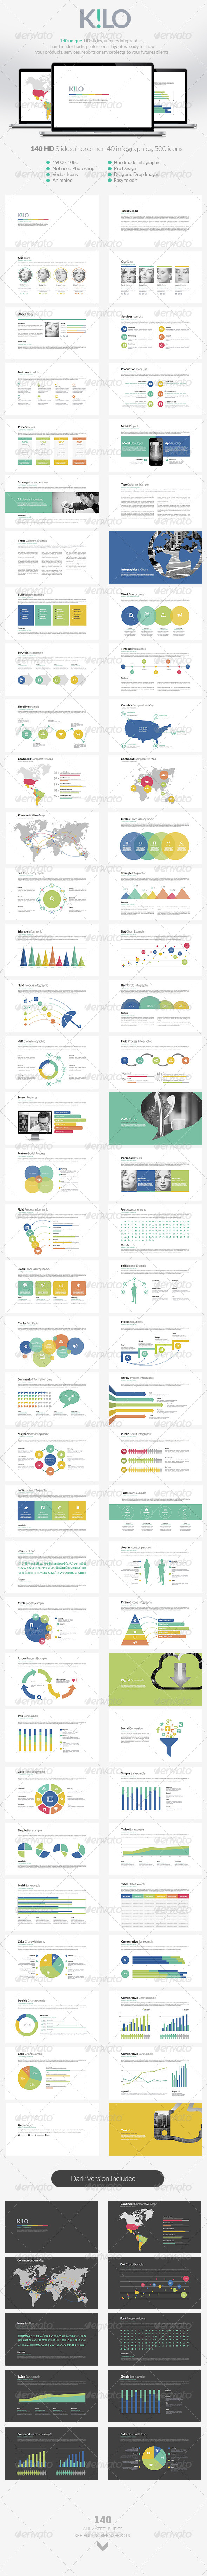 GraphicRiver Kilo Powerpoint Presentation 8564812